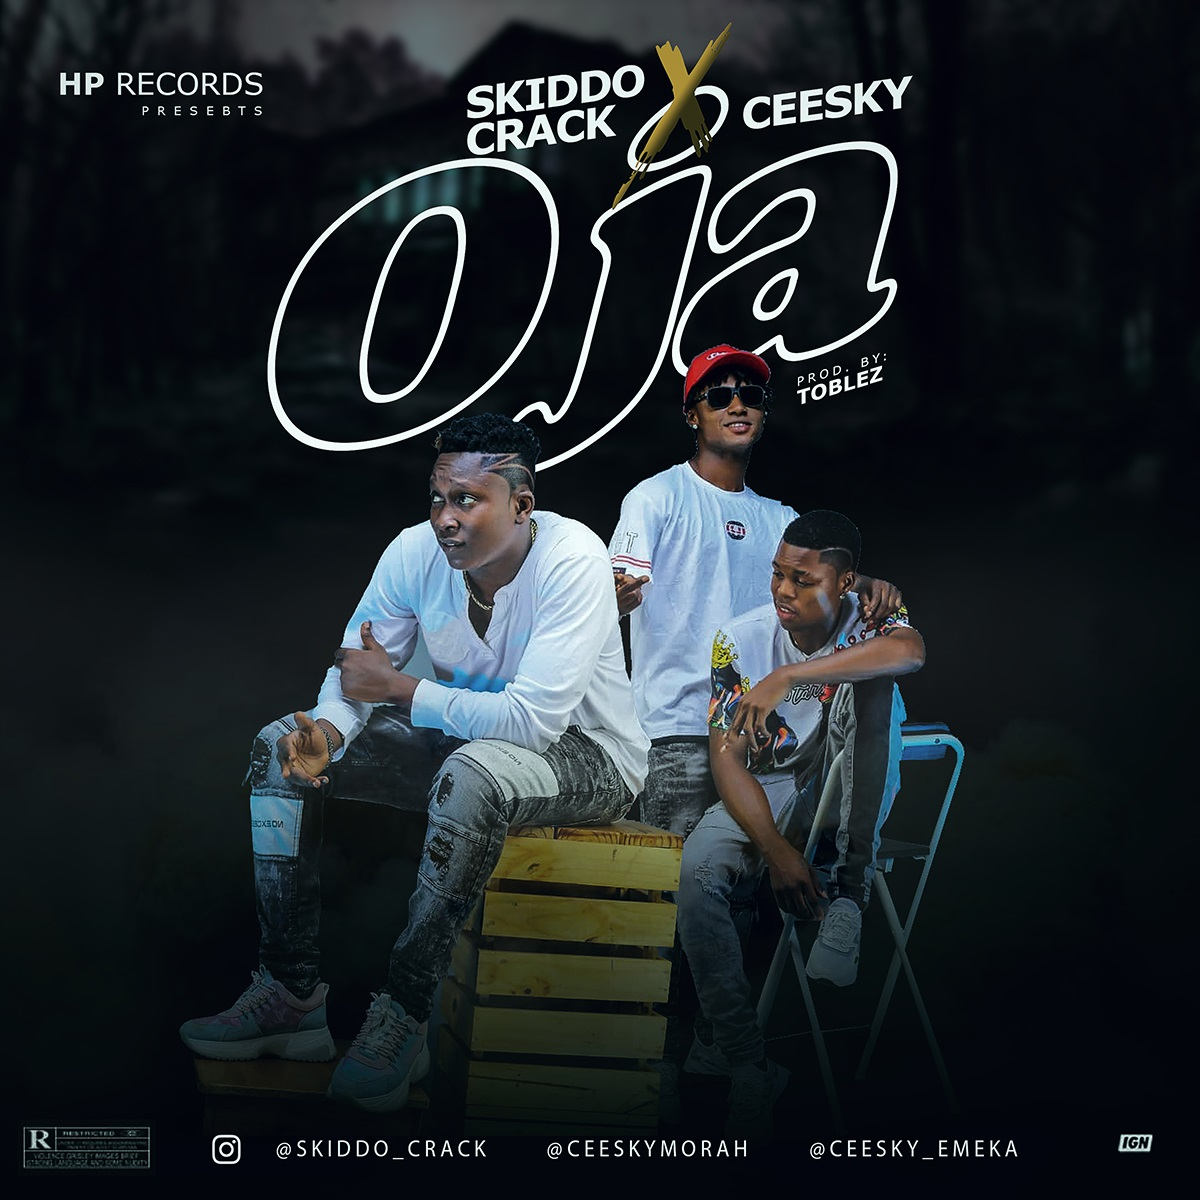 Skiddo Crack Ft. Ceesky - Oja (Prod. By Toblez)